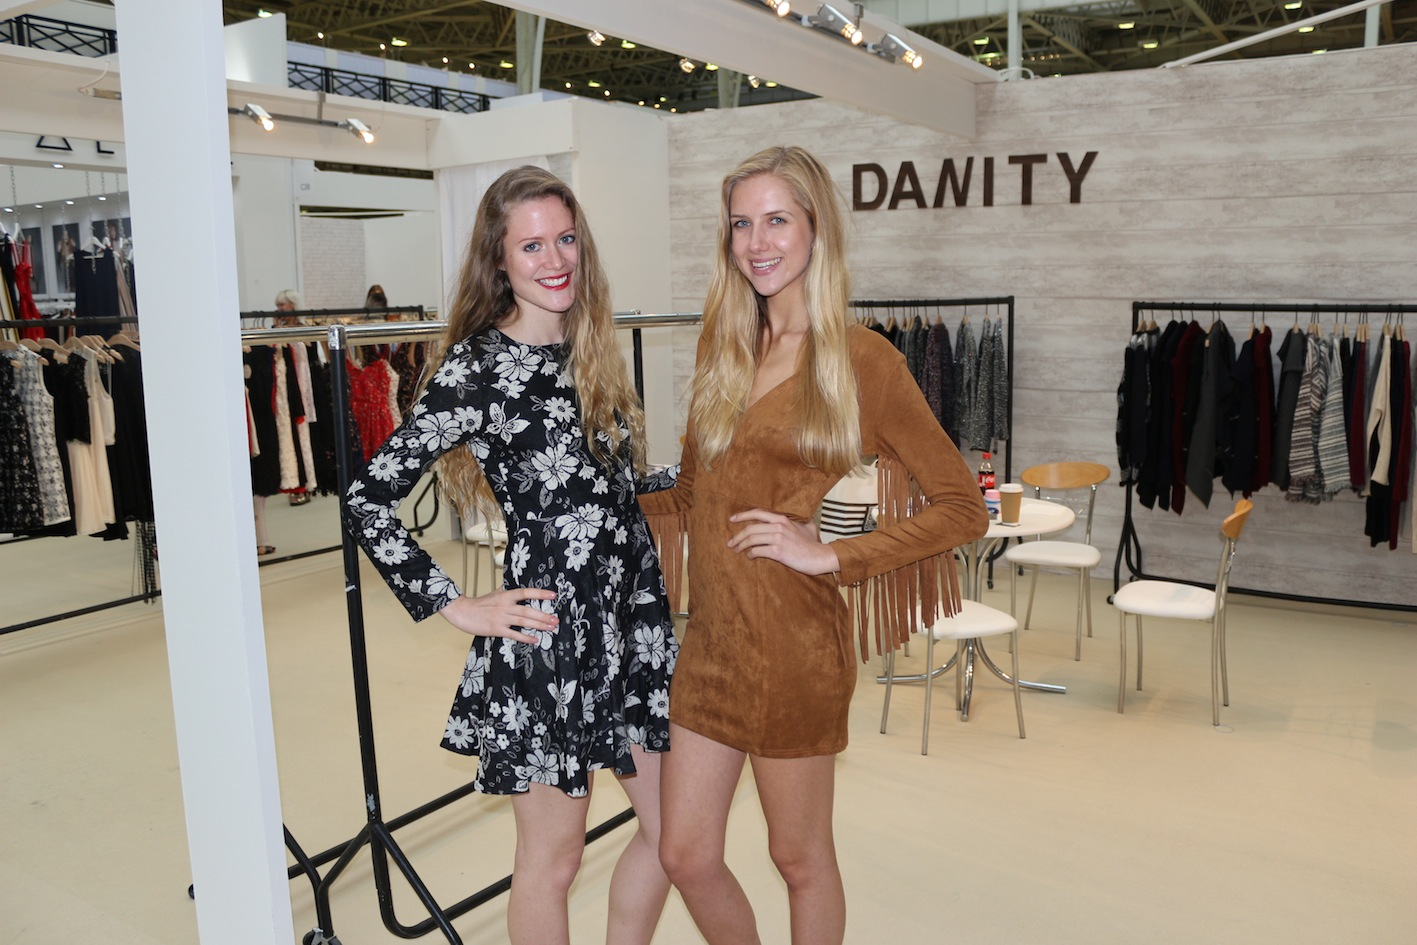 Exhibition Girls Staffing Agency Models for Bookings